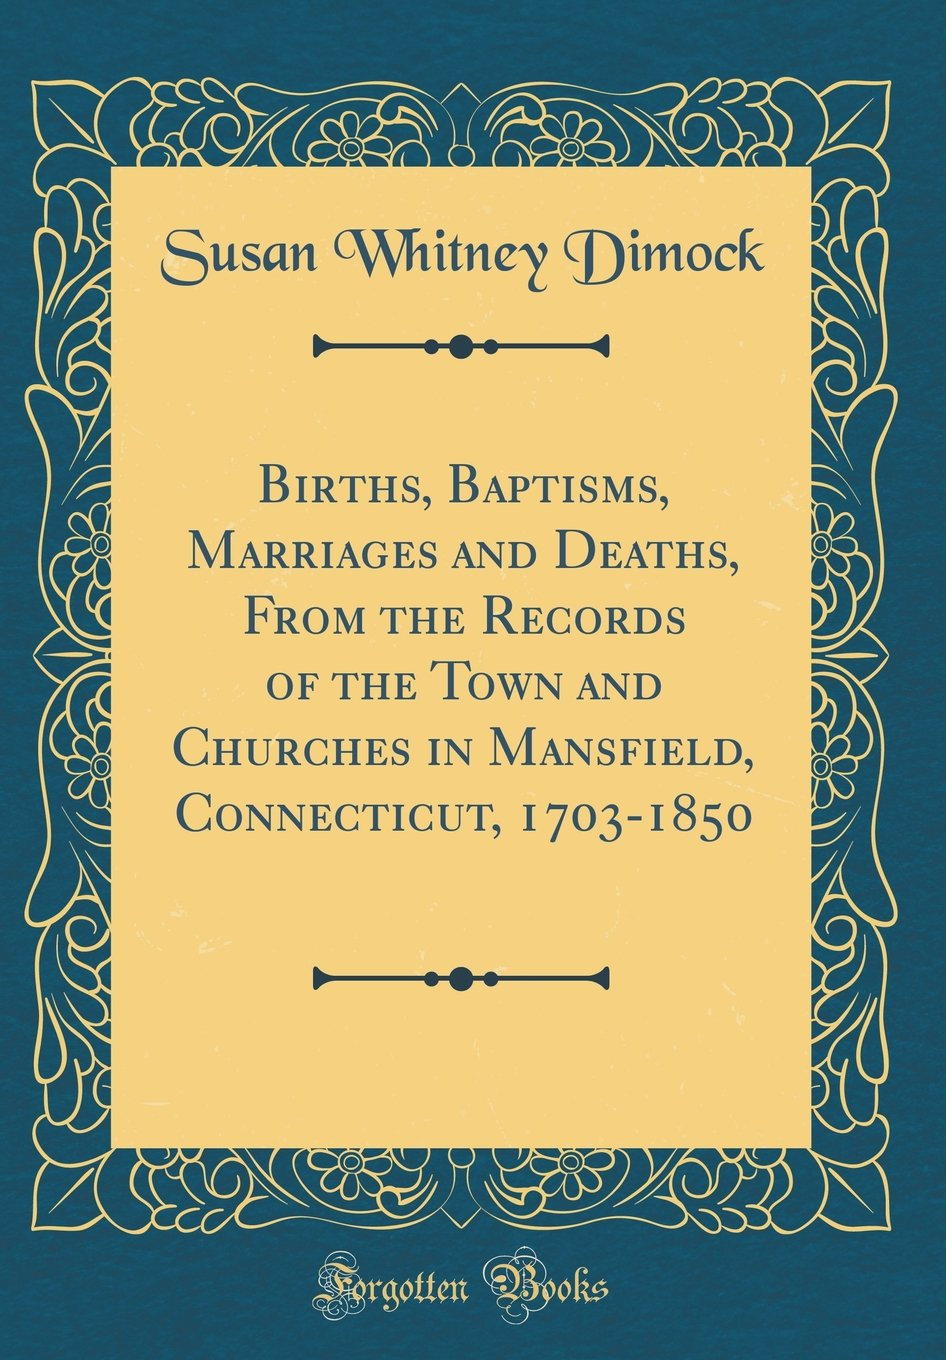 Births, Baptisms, Marriages and Deaths, from the Records of the Town and Churches in Mansfield, Connecticut, 1703-1850 (Classic Reprint) pdf